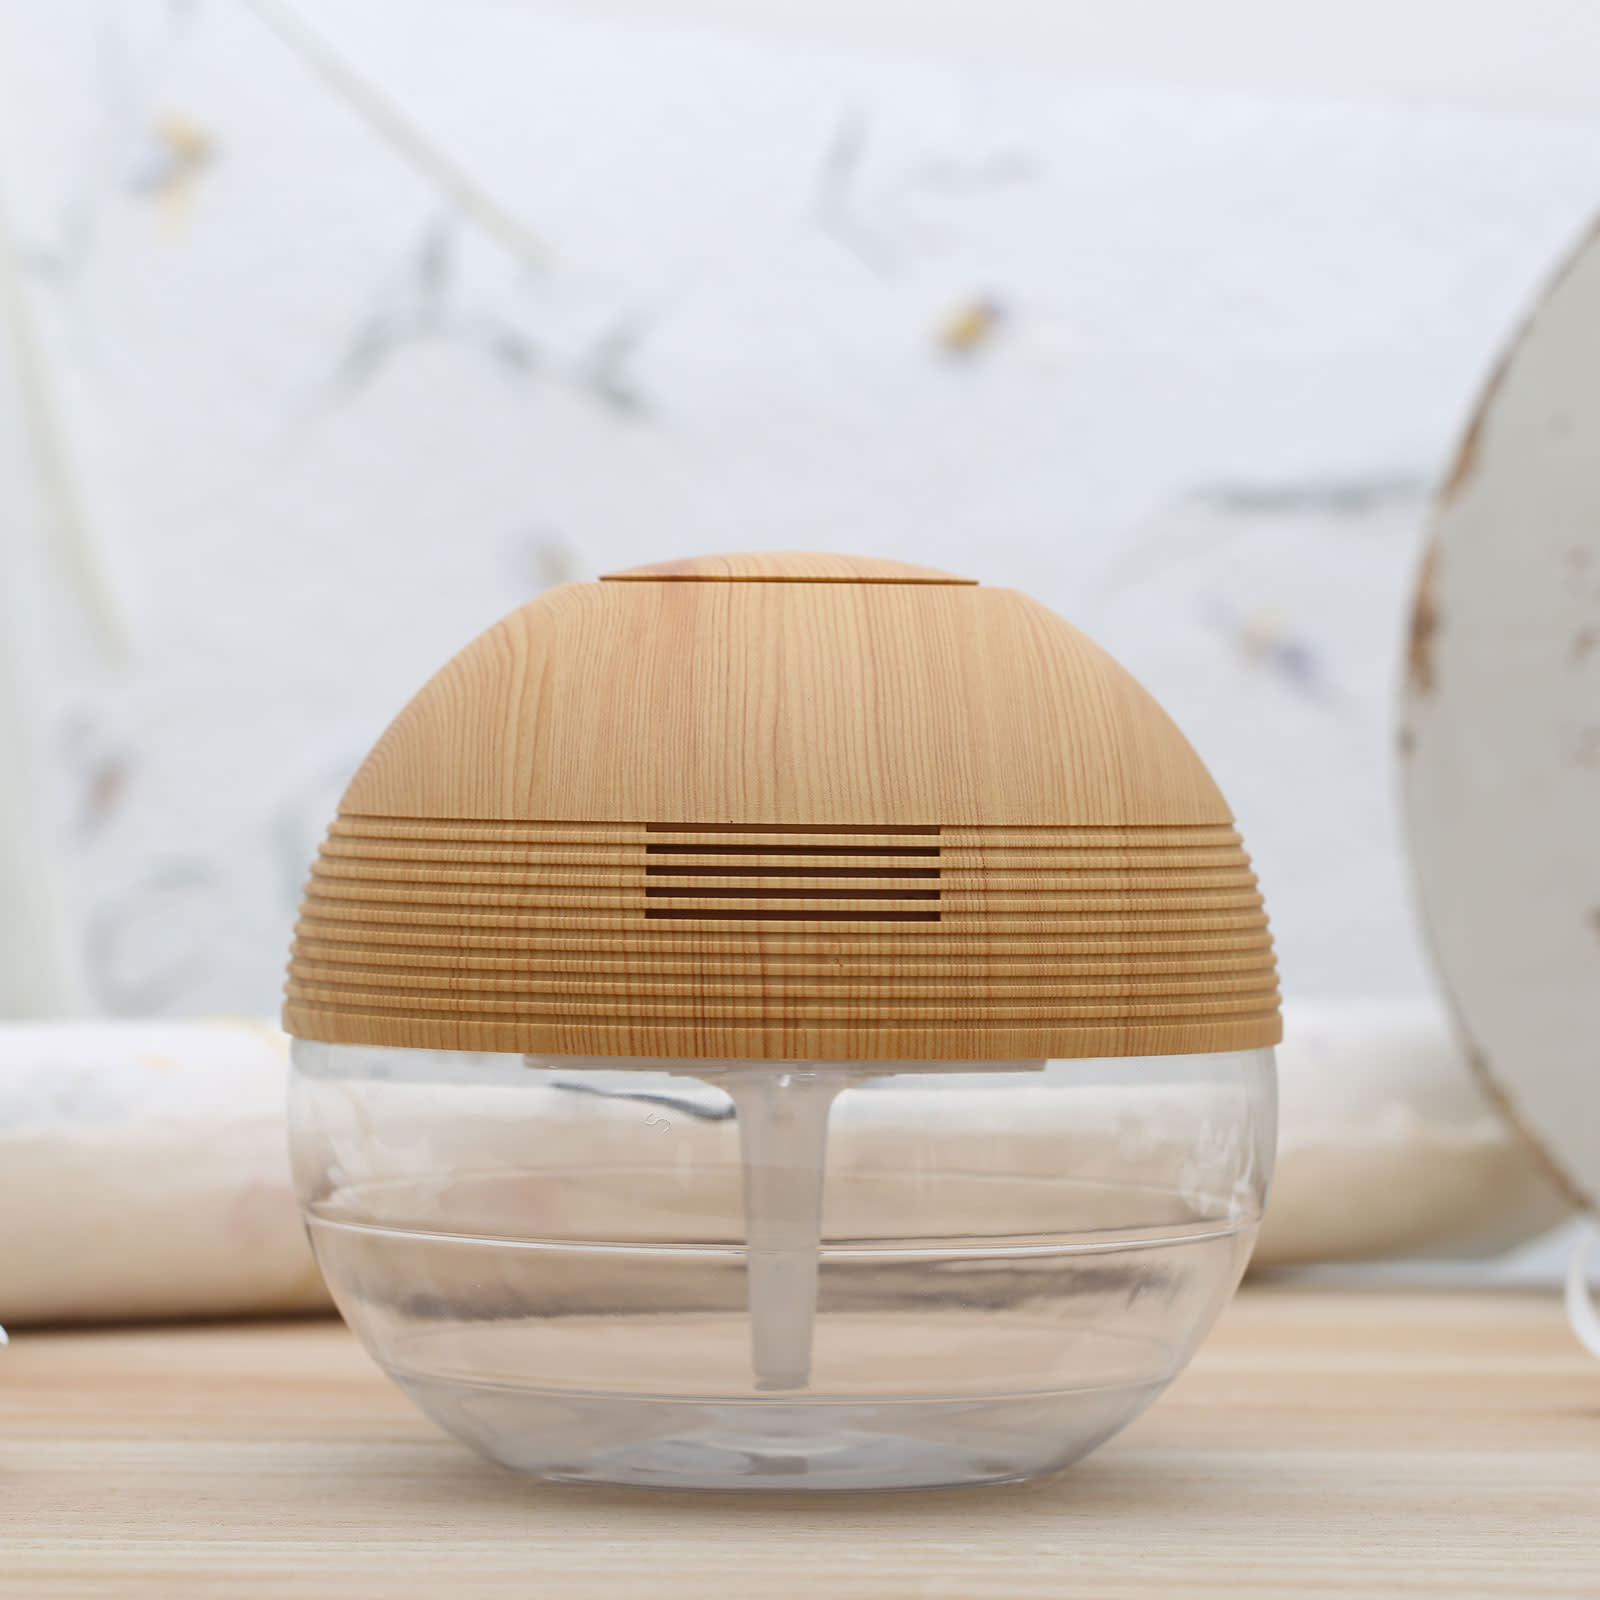 UROMA Water Based Air Revitalizer Purifier Odor Remover Humidifier Aromatherapy Air Cleaner